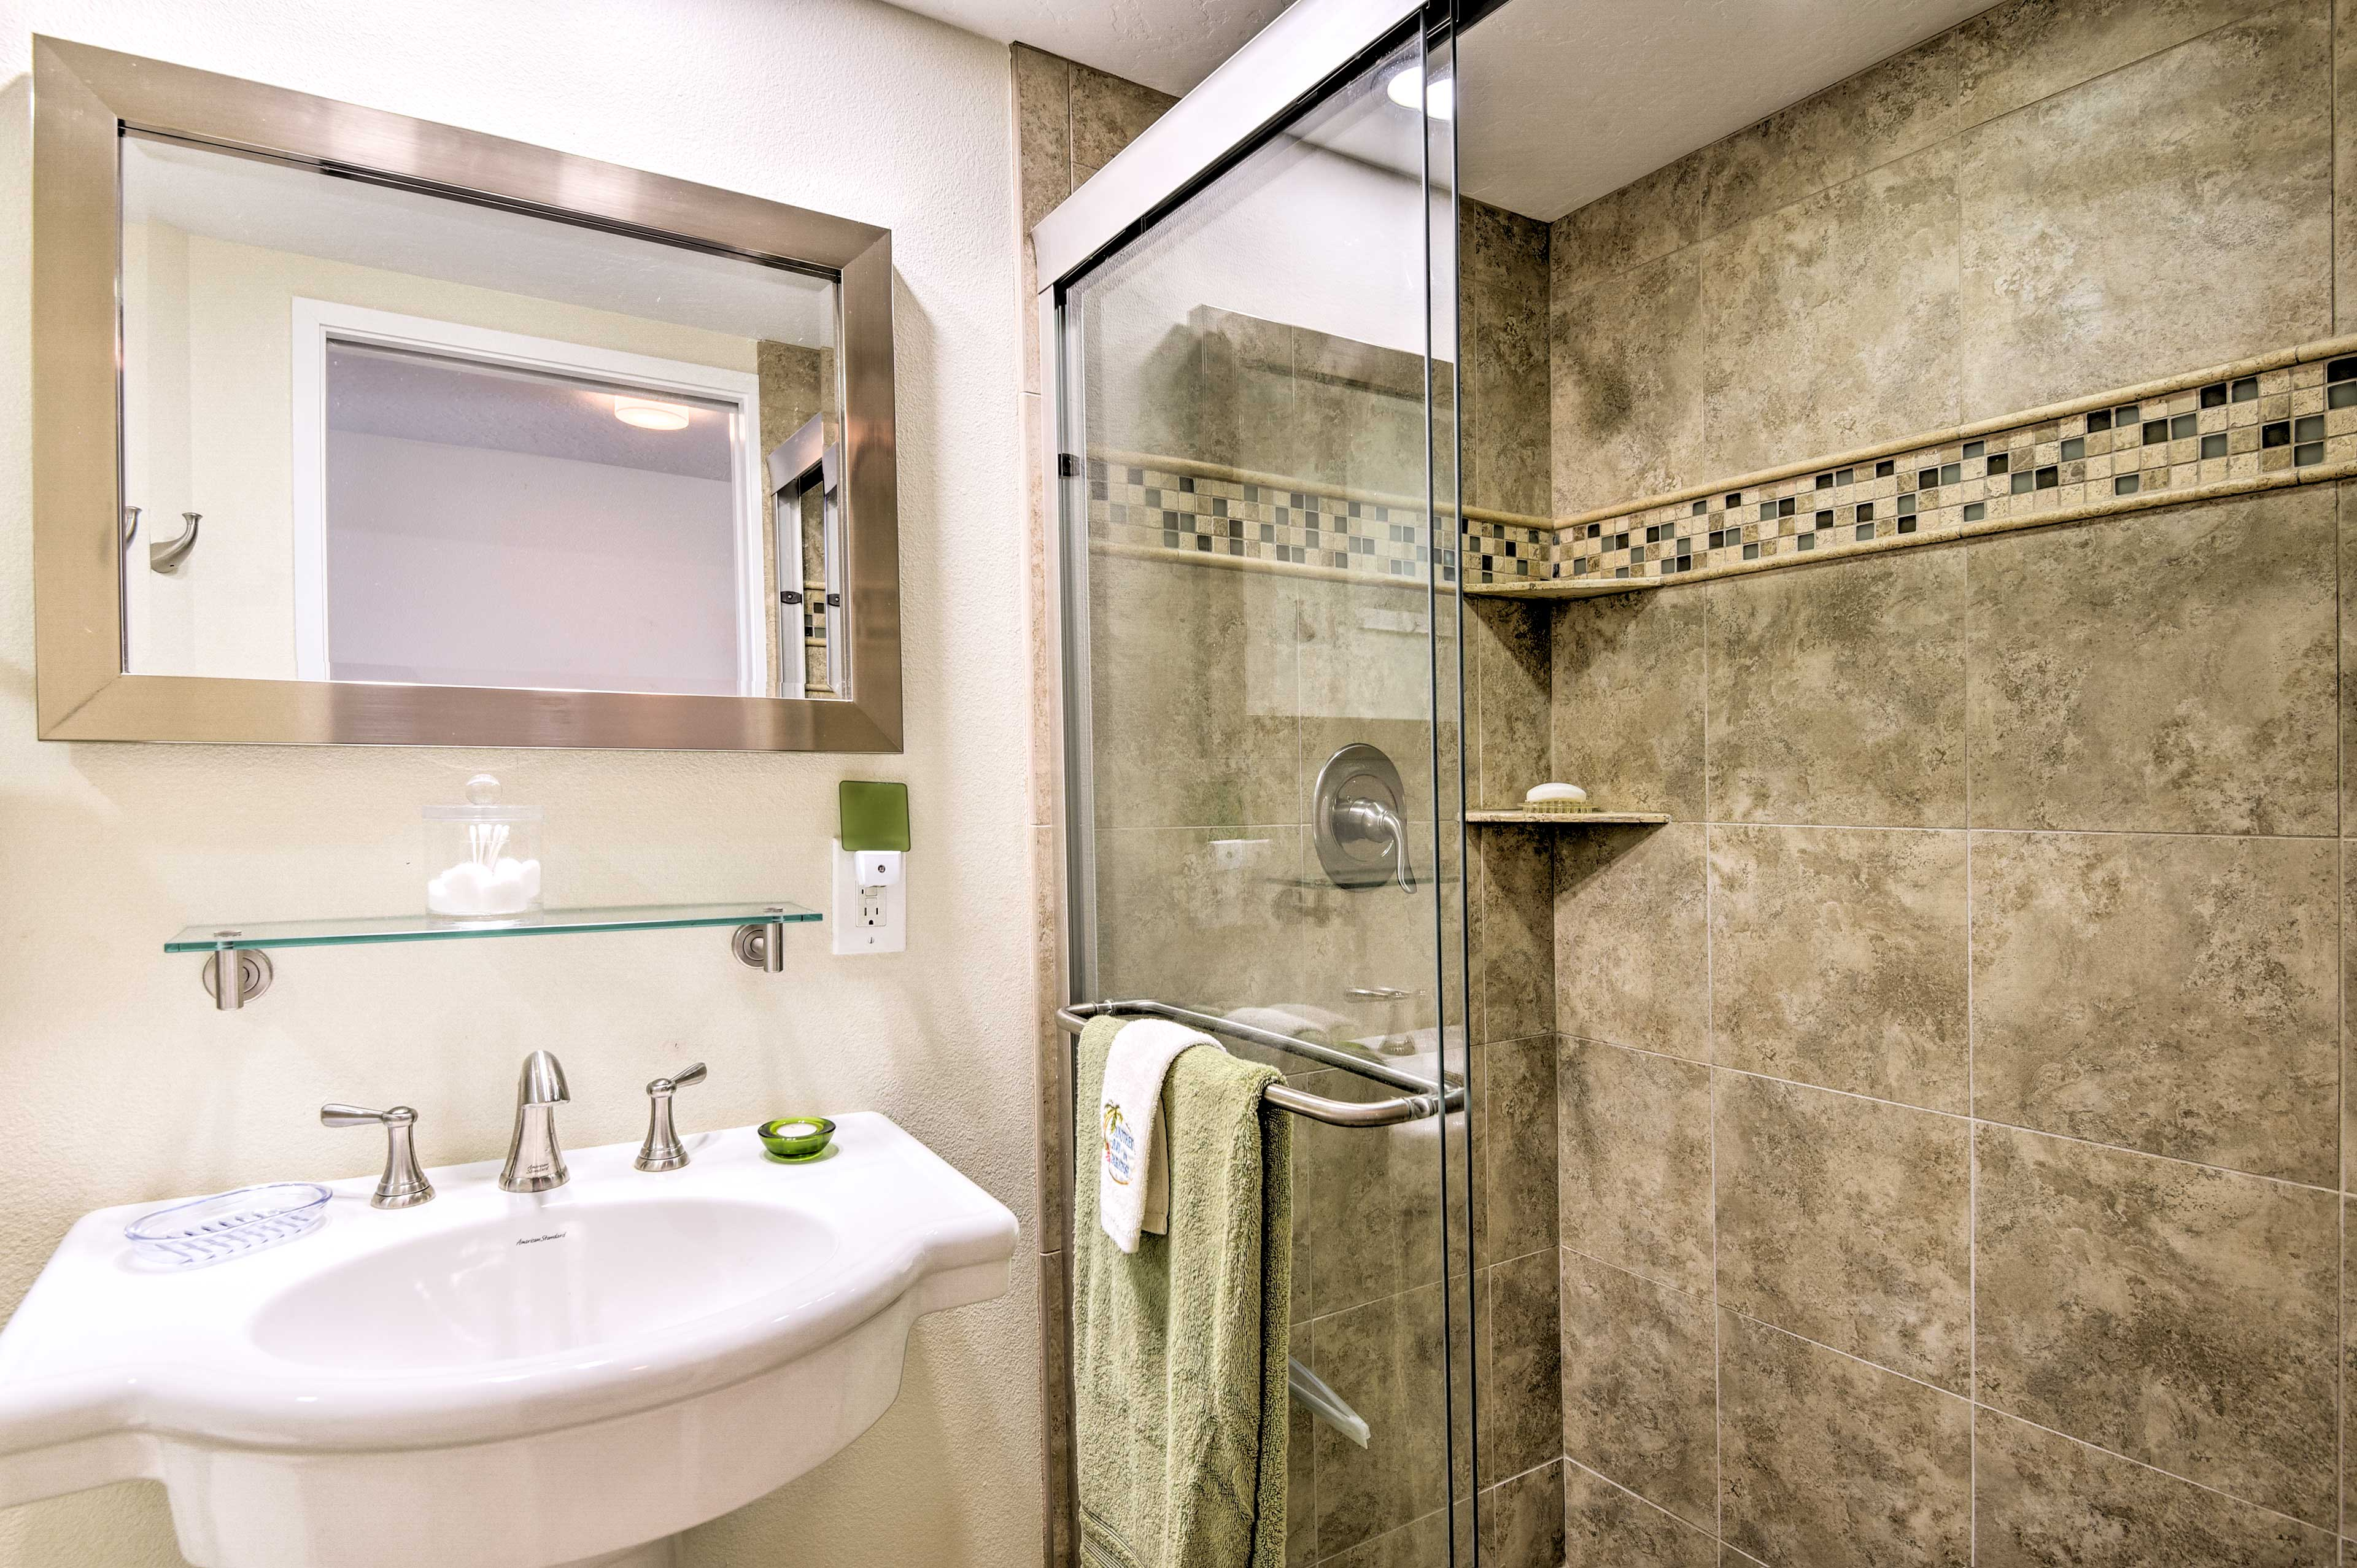 The second bathroom also features an elegant walk-in shower.